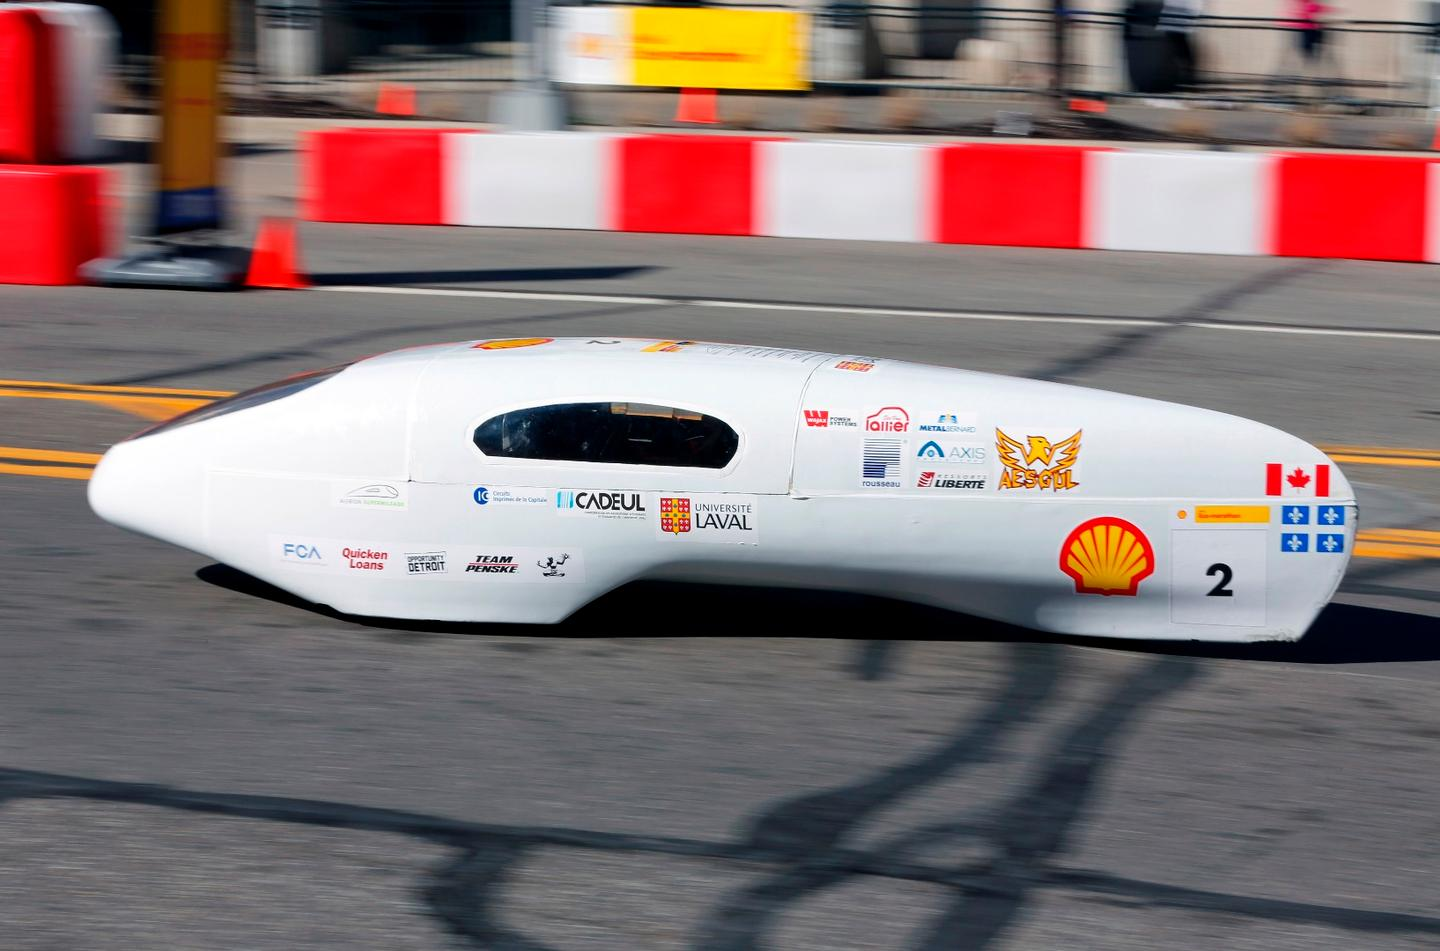 The Alérion Supermileage is made of carbon fiber